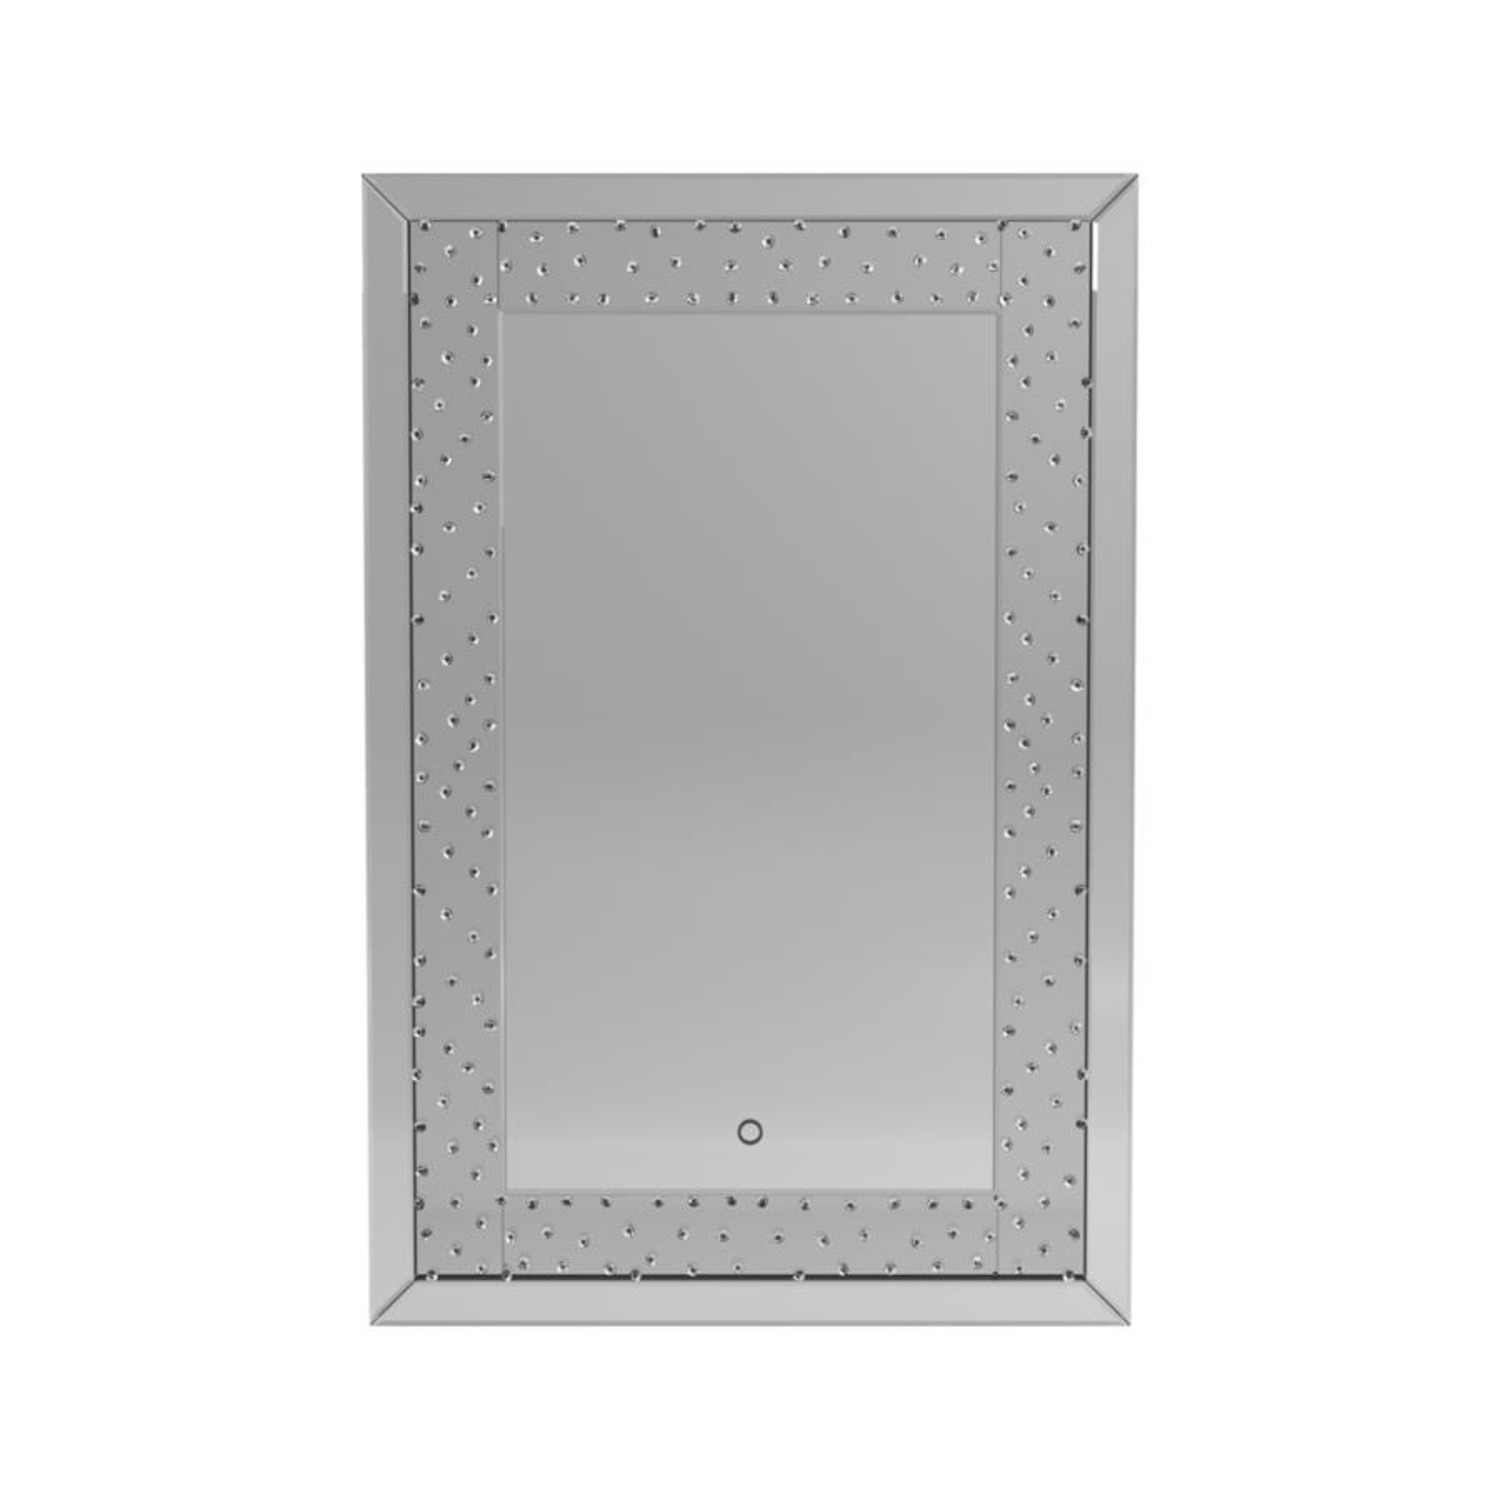 Wall Mirror In Silver Frame W/ Acrylic Crystals - image-1